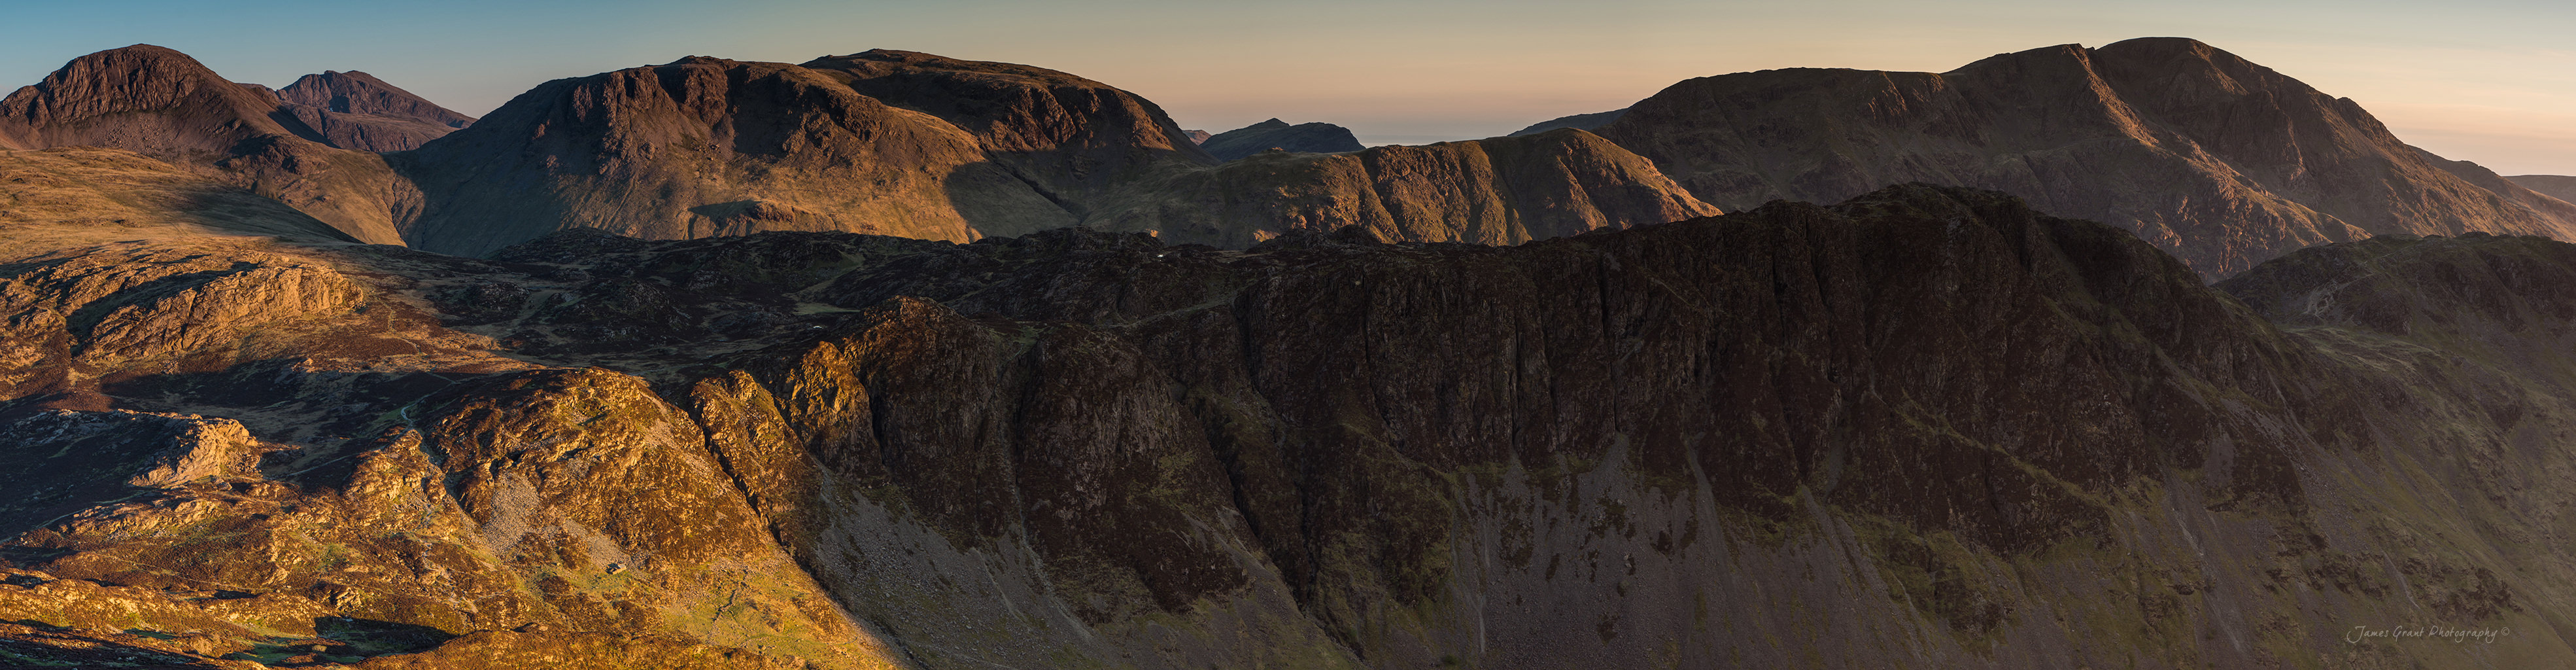 Fleetwith Pike Sunset - Lake District Wild Camping Photography